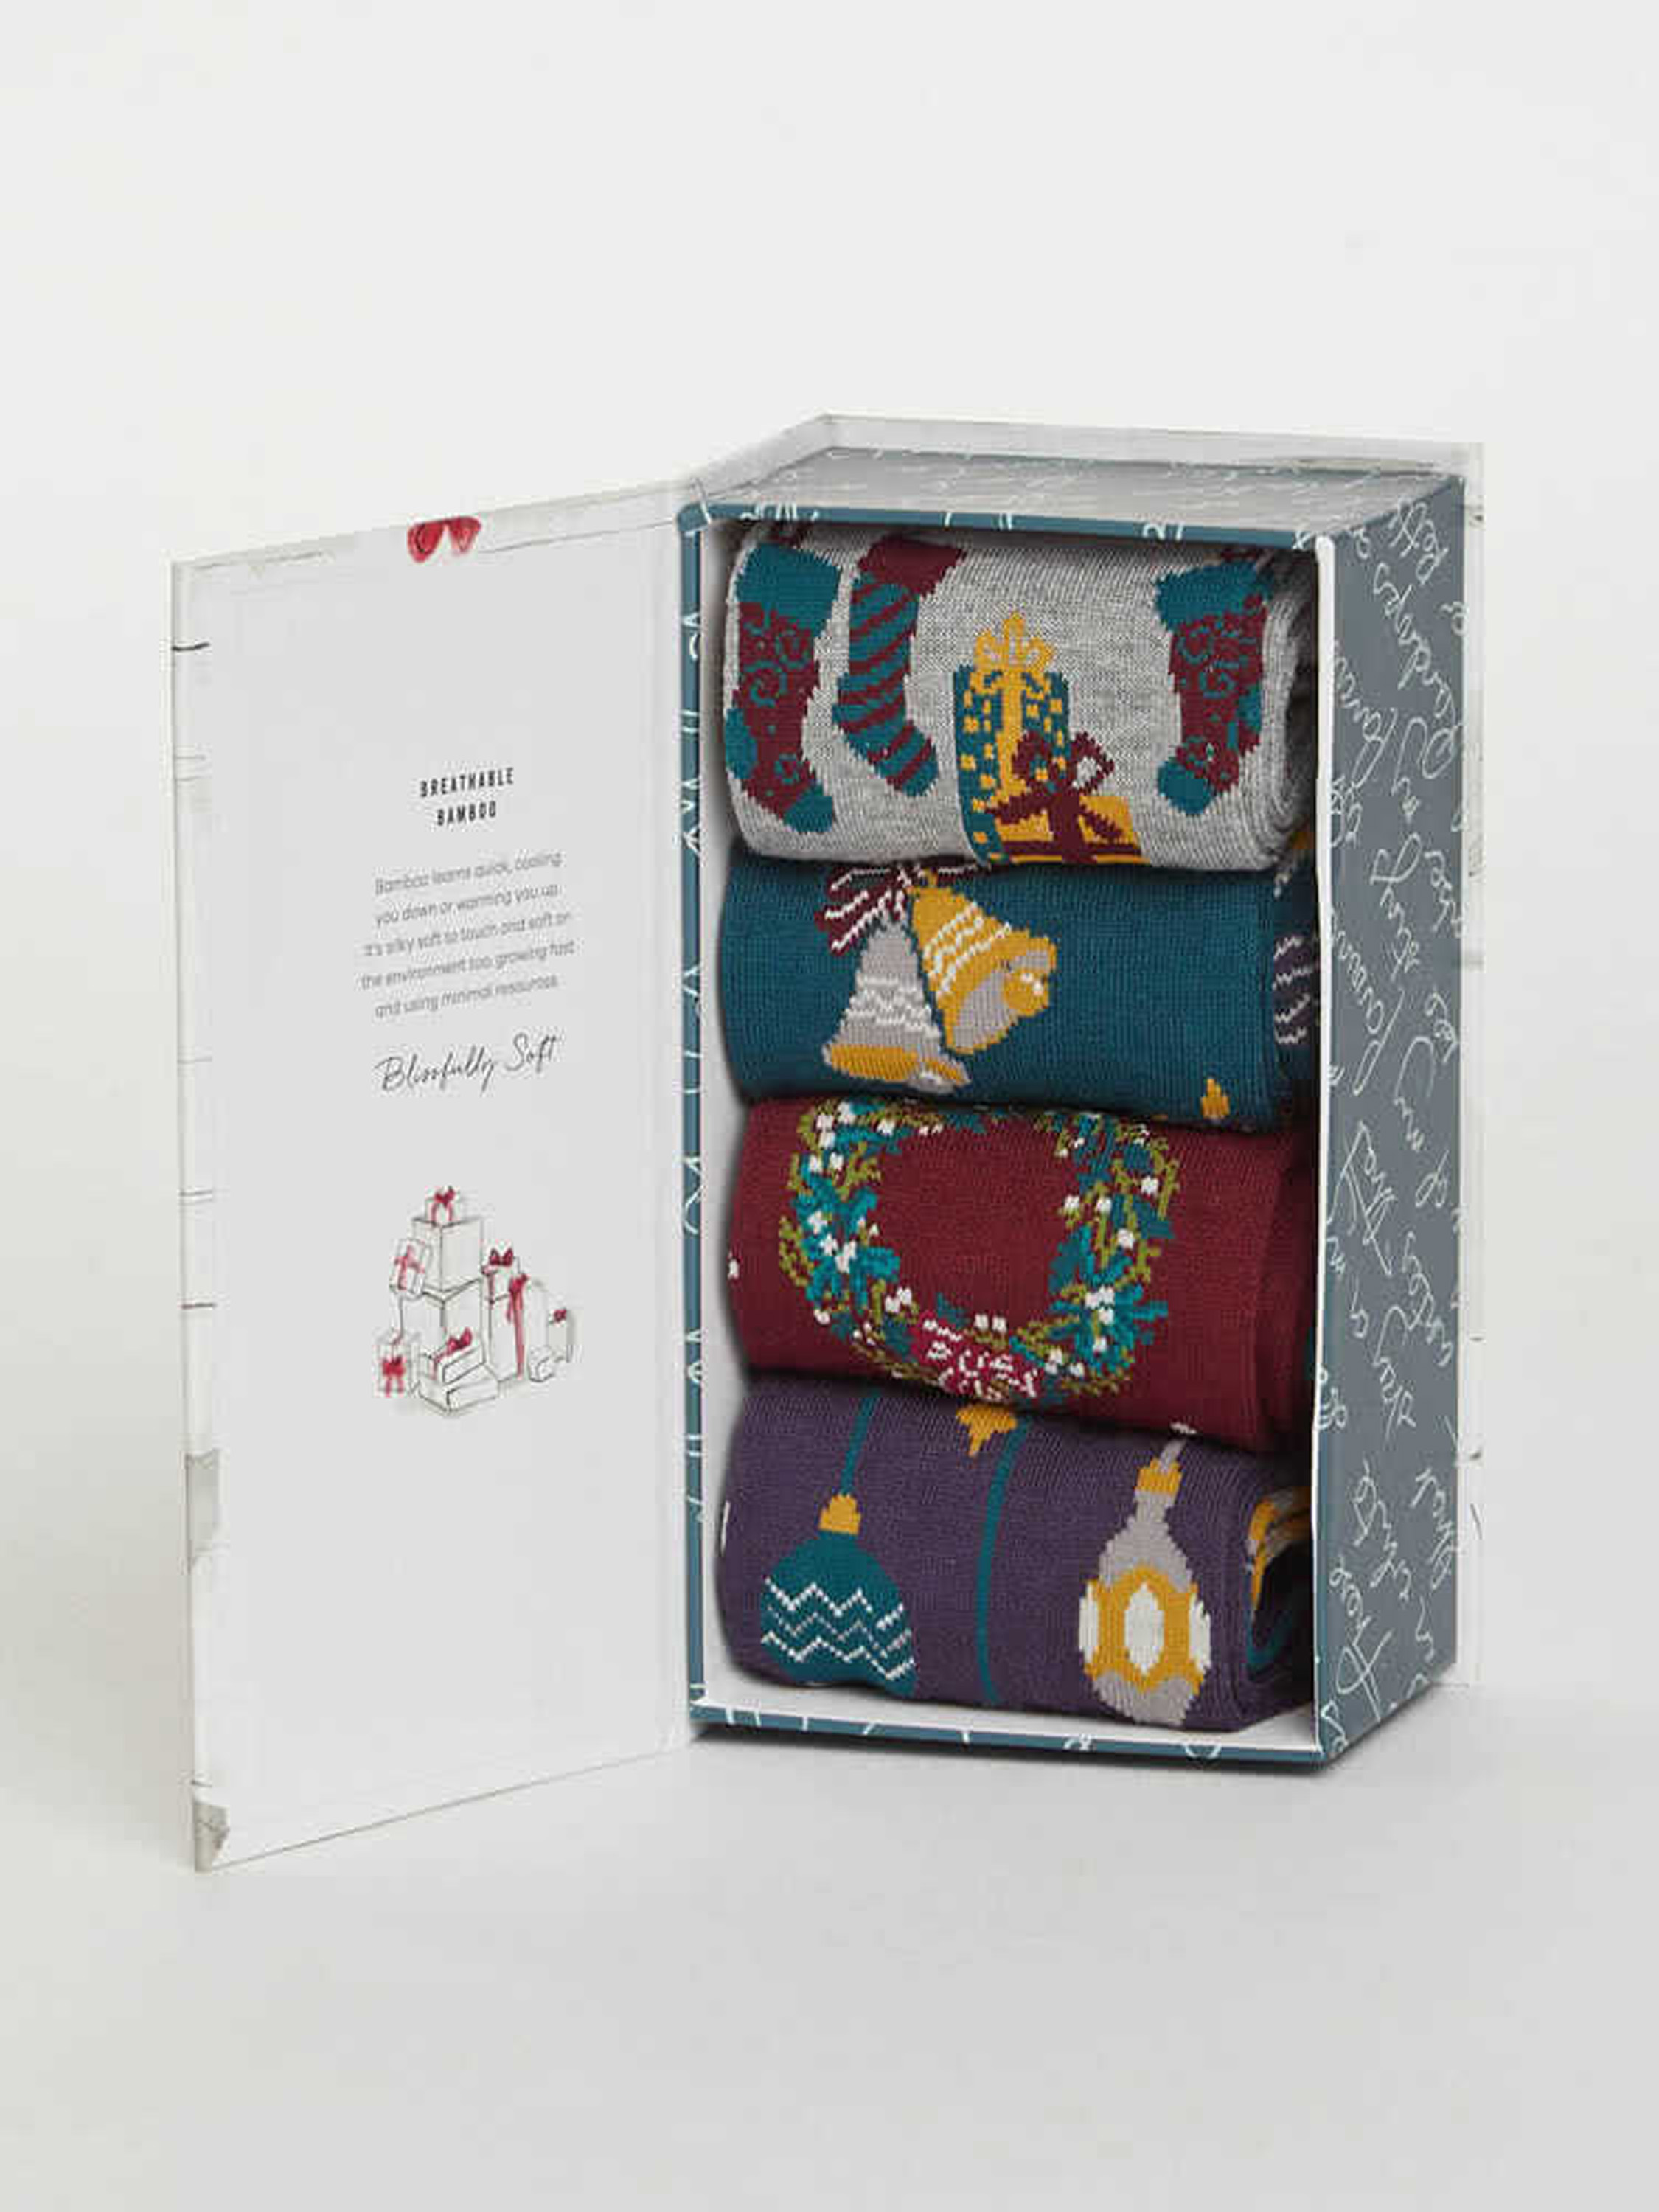 "<a href=""https://hanfhaus.de/thought-christmas-eve-sock-box-p-254533.html\"" itemprop=\""url\""><span itemprop=\""name\"">Christmas Eve Sock Box</span></a><br /><small>[<span itemprop=\""model\"">254533</span>]</small>"